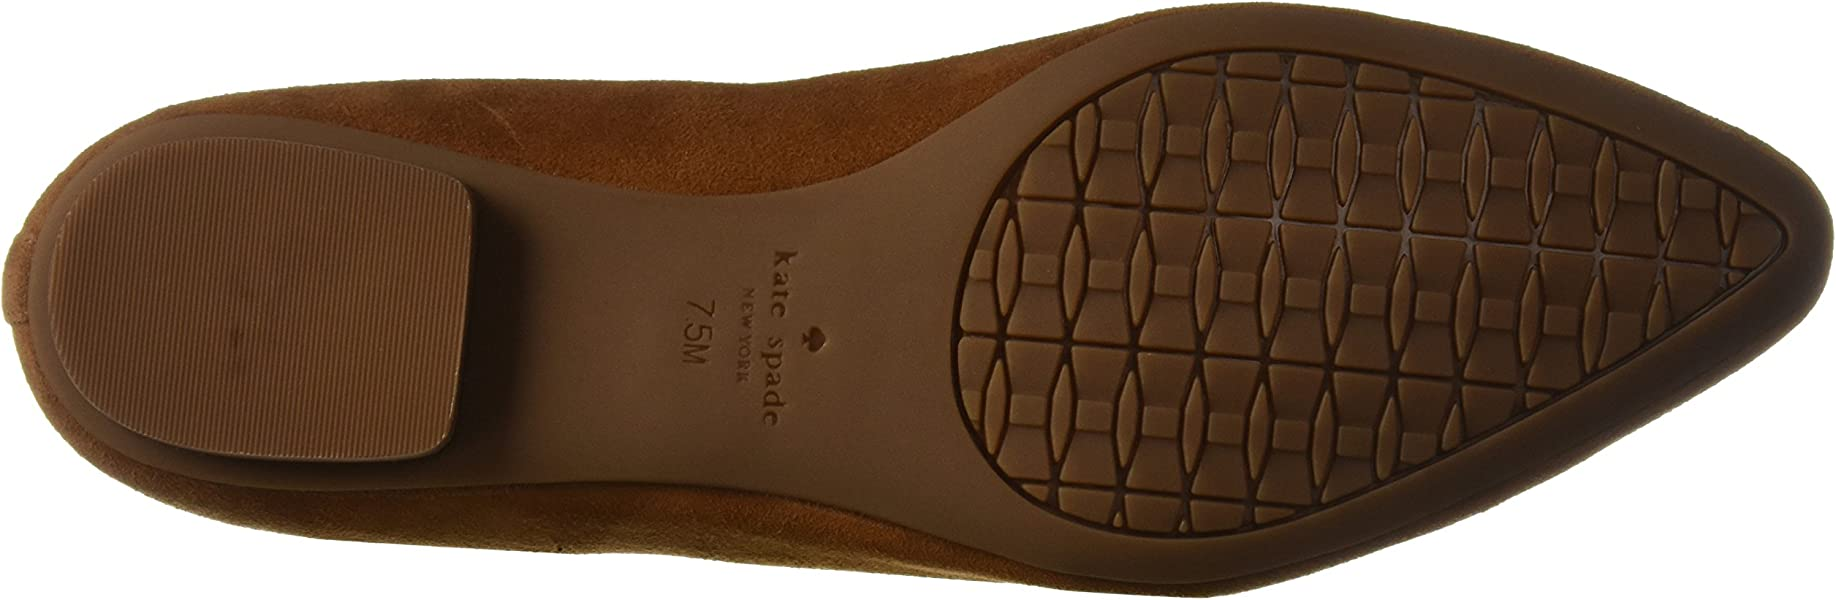 38bf70b23ad8 Kate Spade New York Women s Nicole Too Ballet Flat Tobacco 6 M US. Back.  Double-tap to zoom